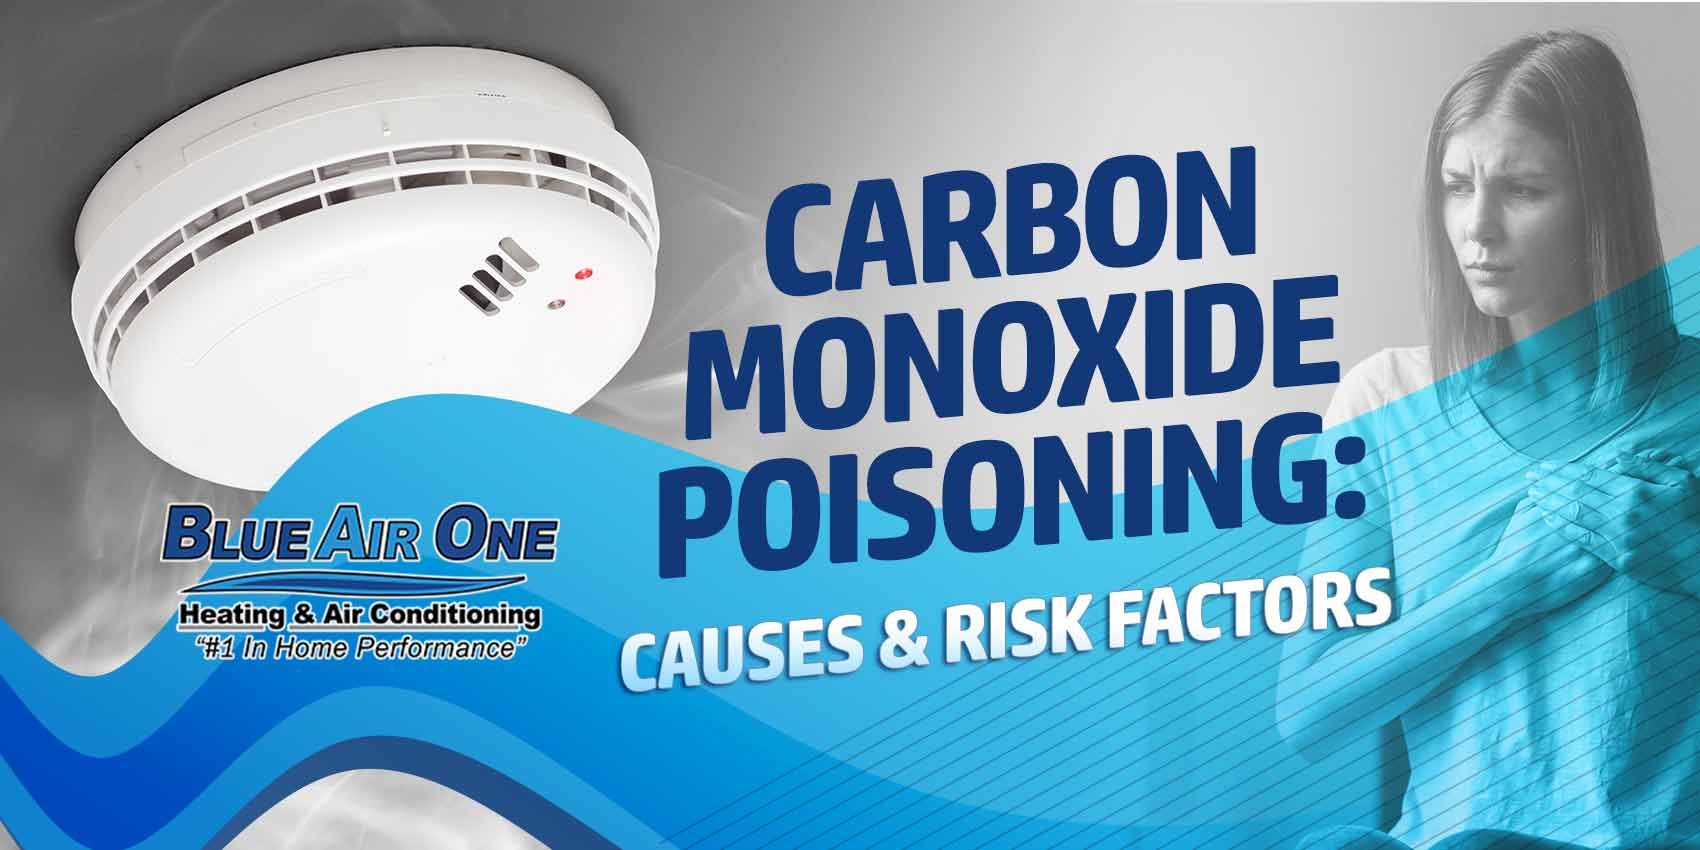 Carbon Monoxide Poisoning: Causes & Risk Factors